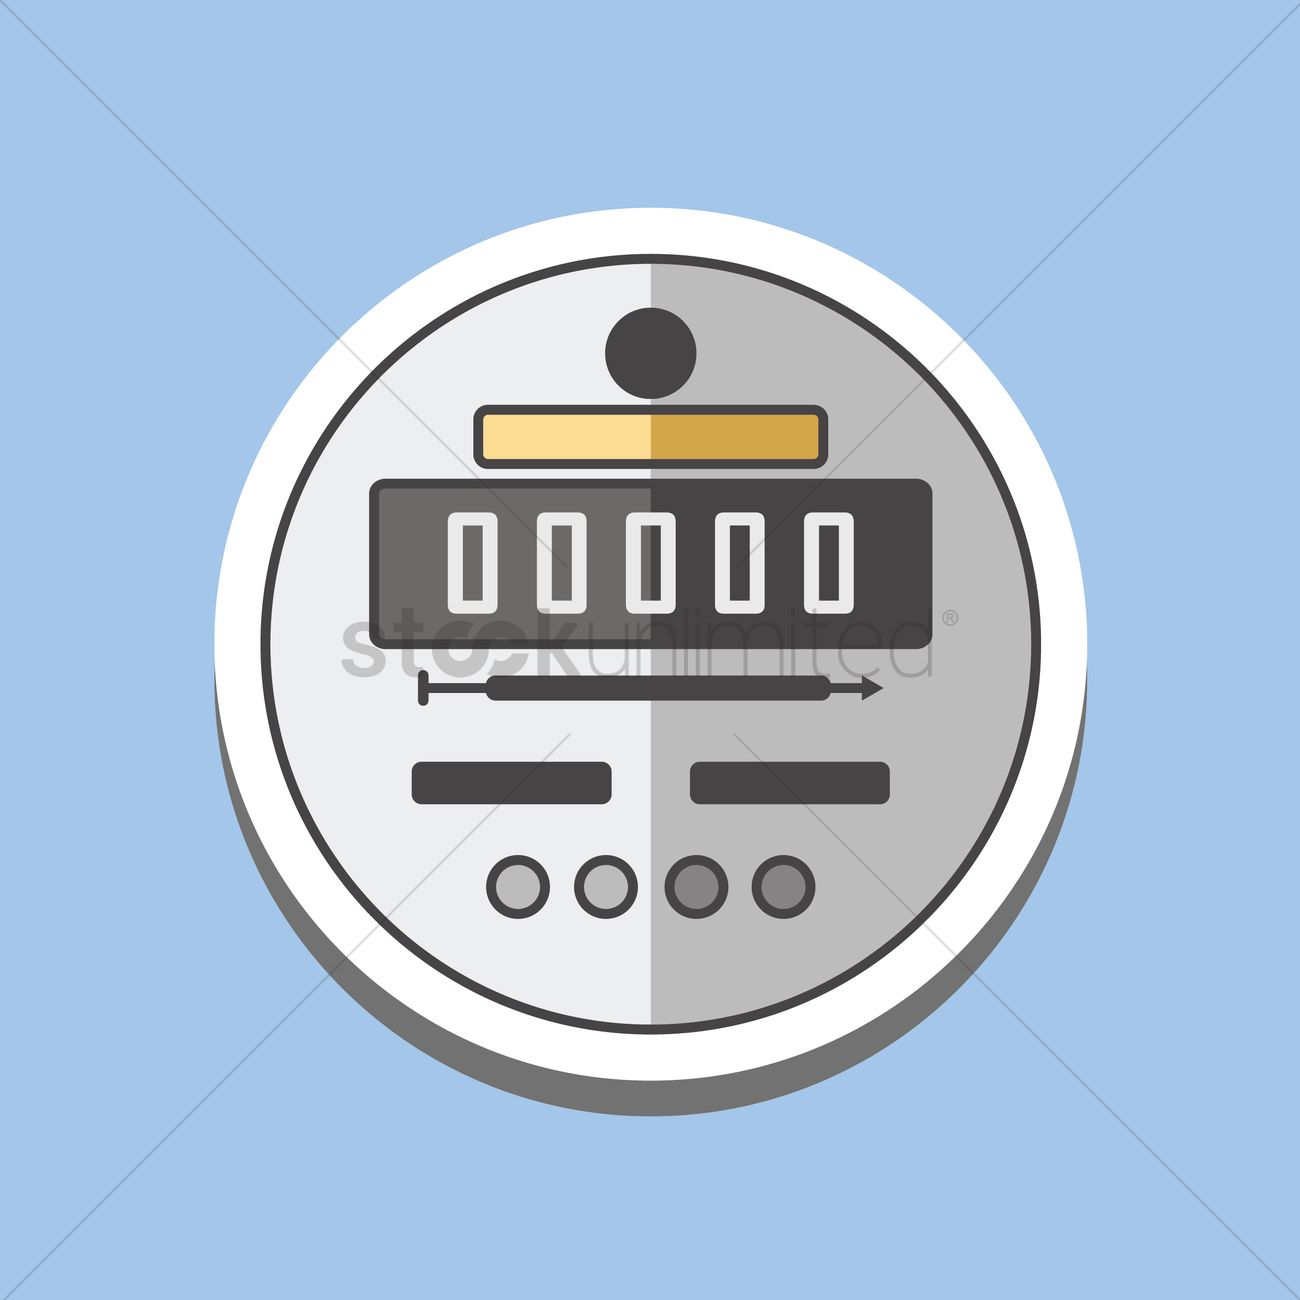 Electric meter Vector Image - 1391878 | StockUnlimited